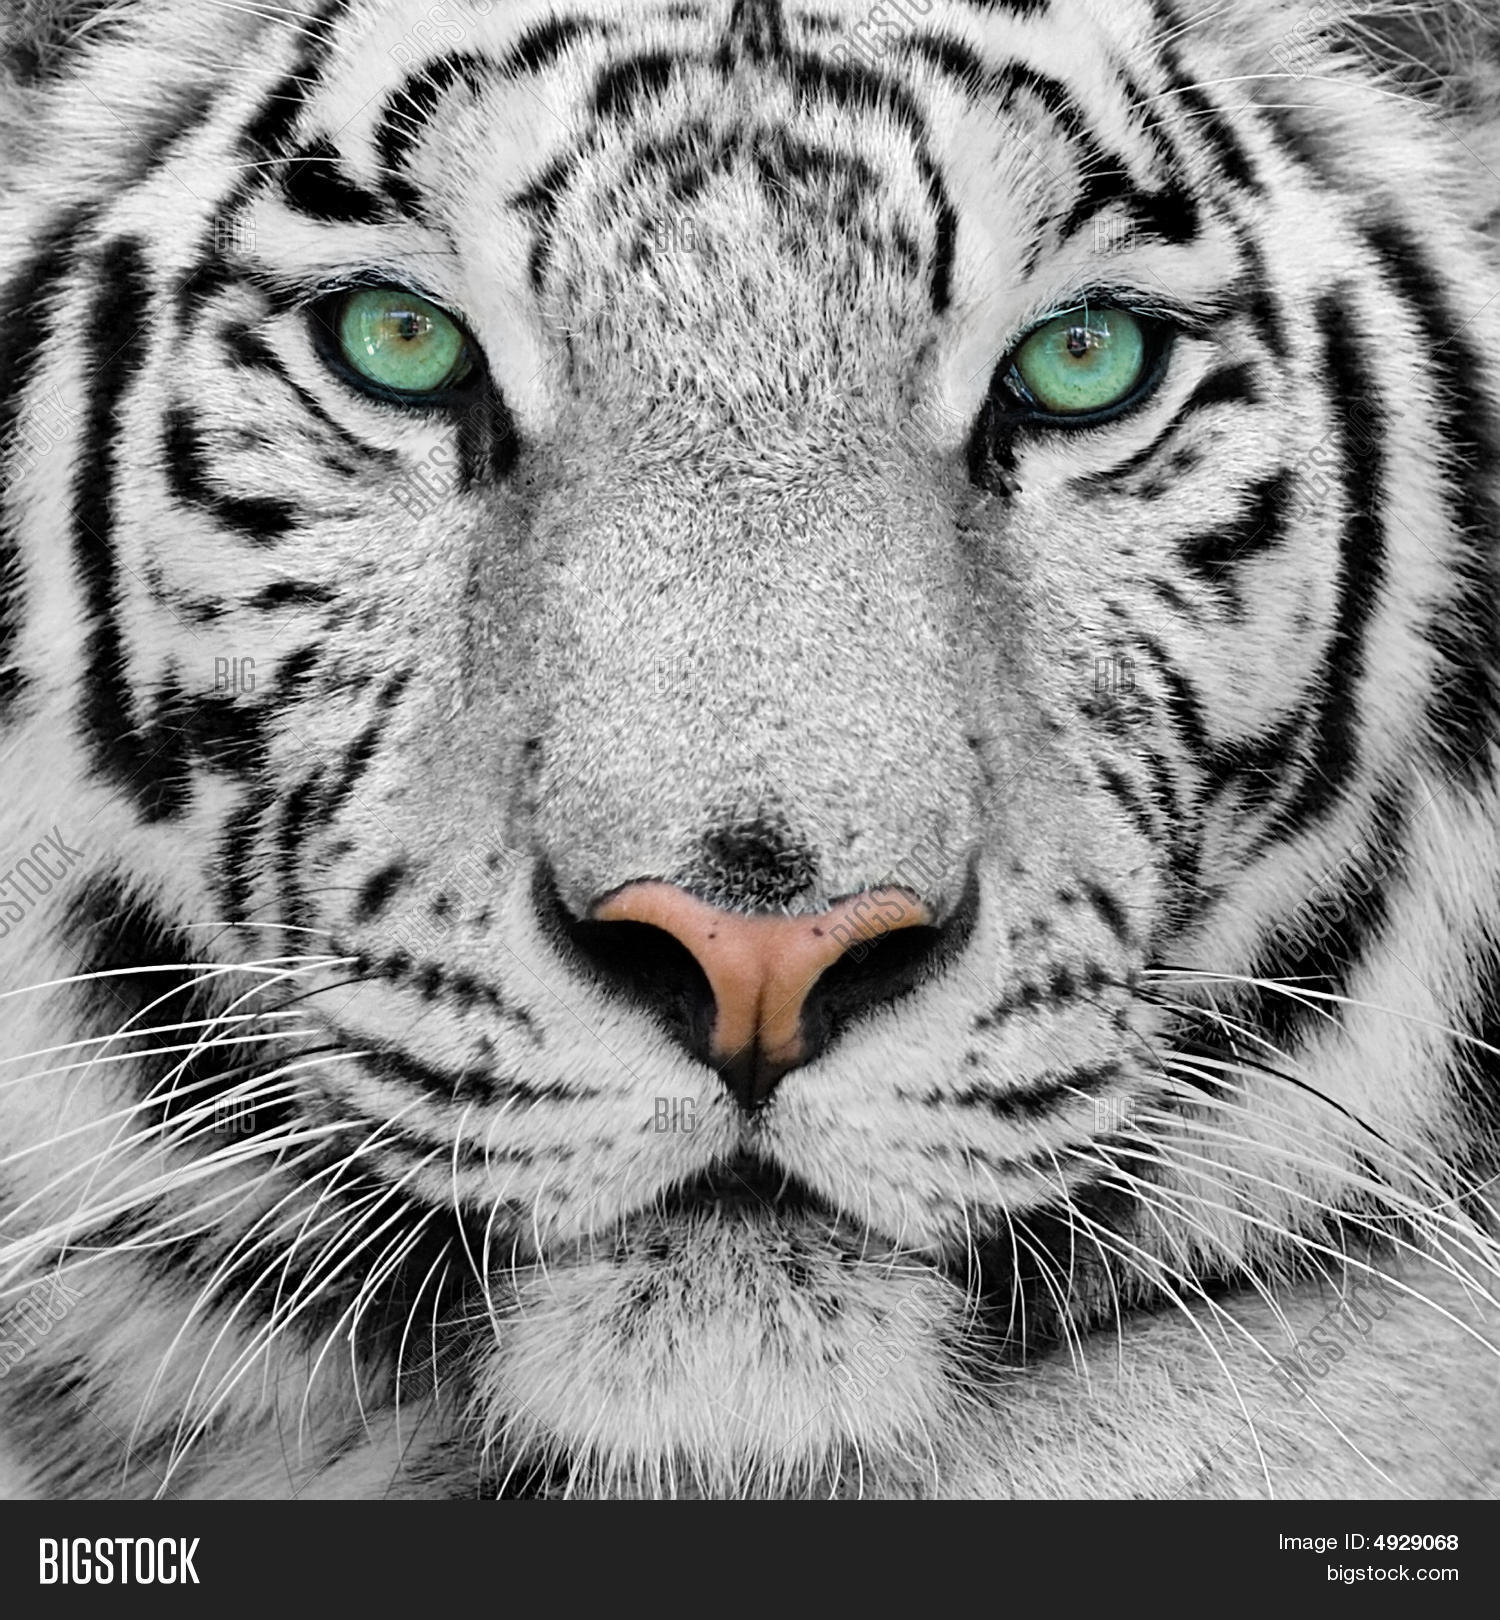 White Tiger Image & Photo | Bigstock